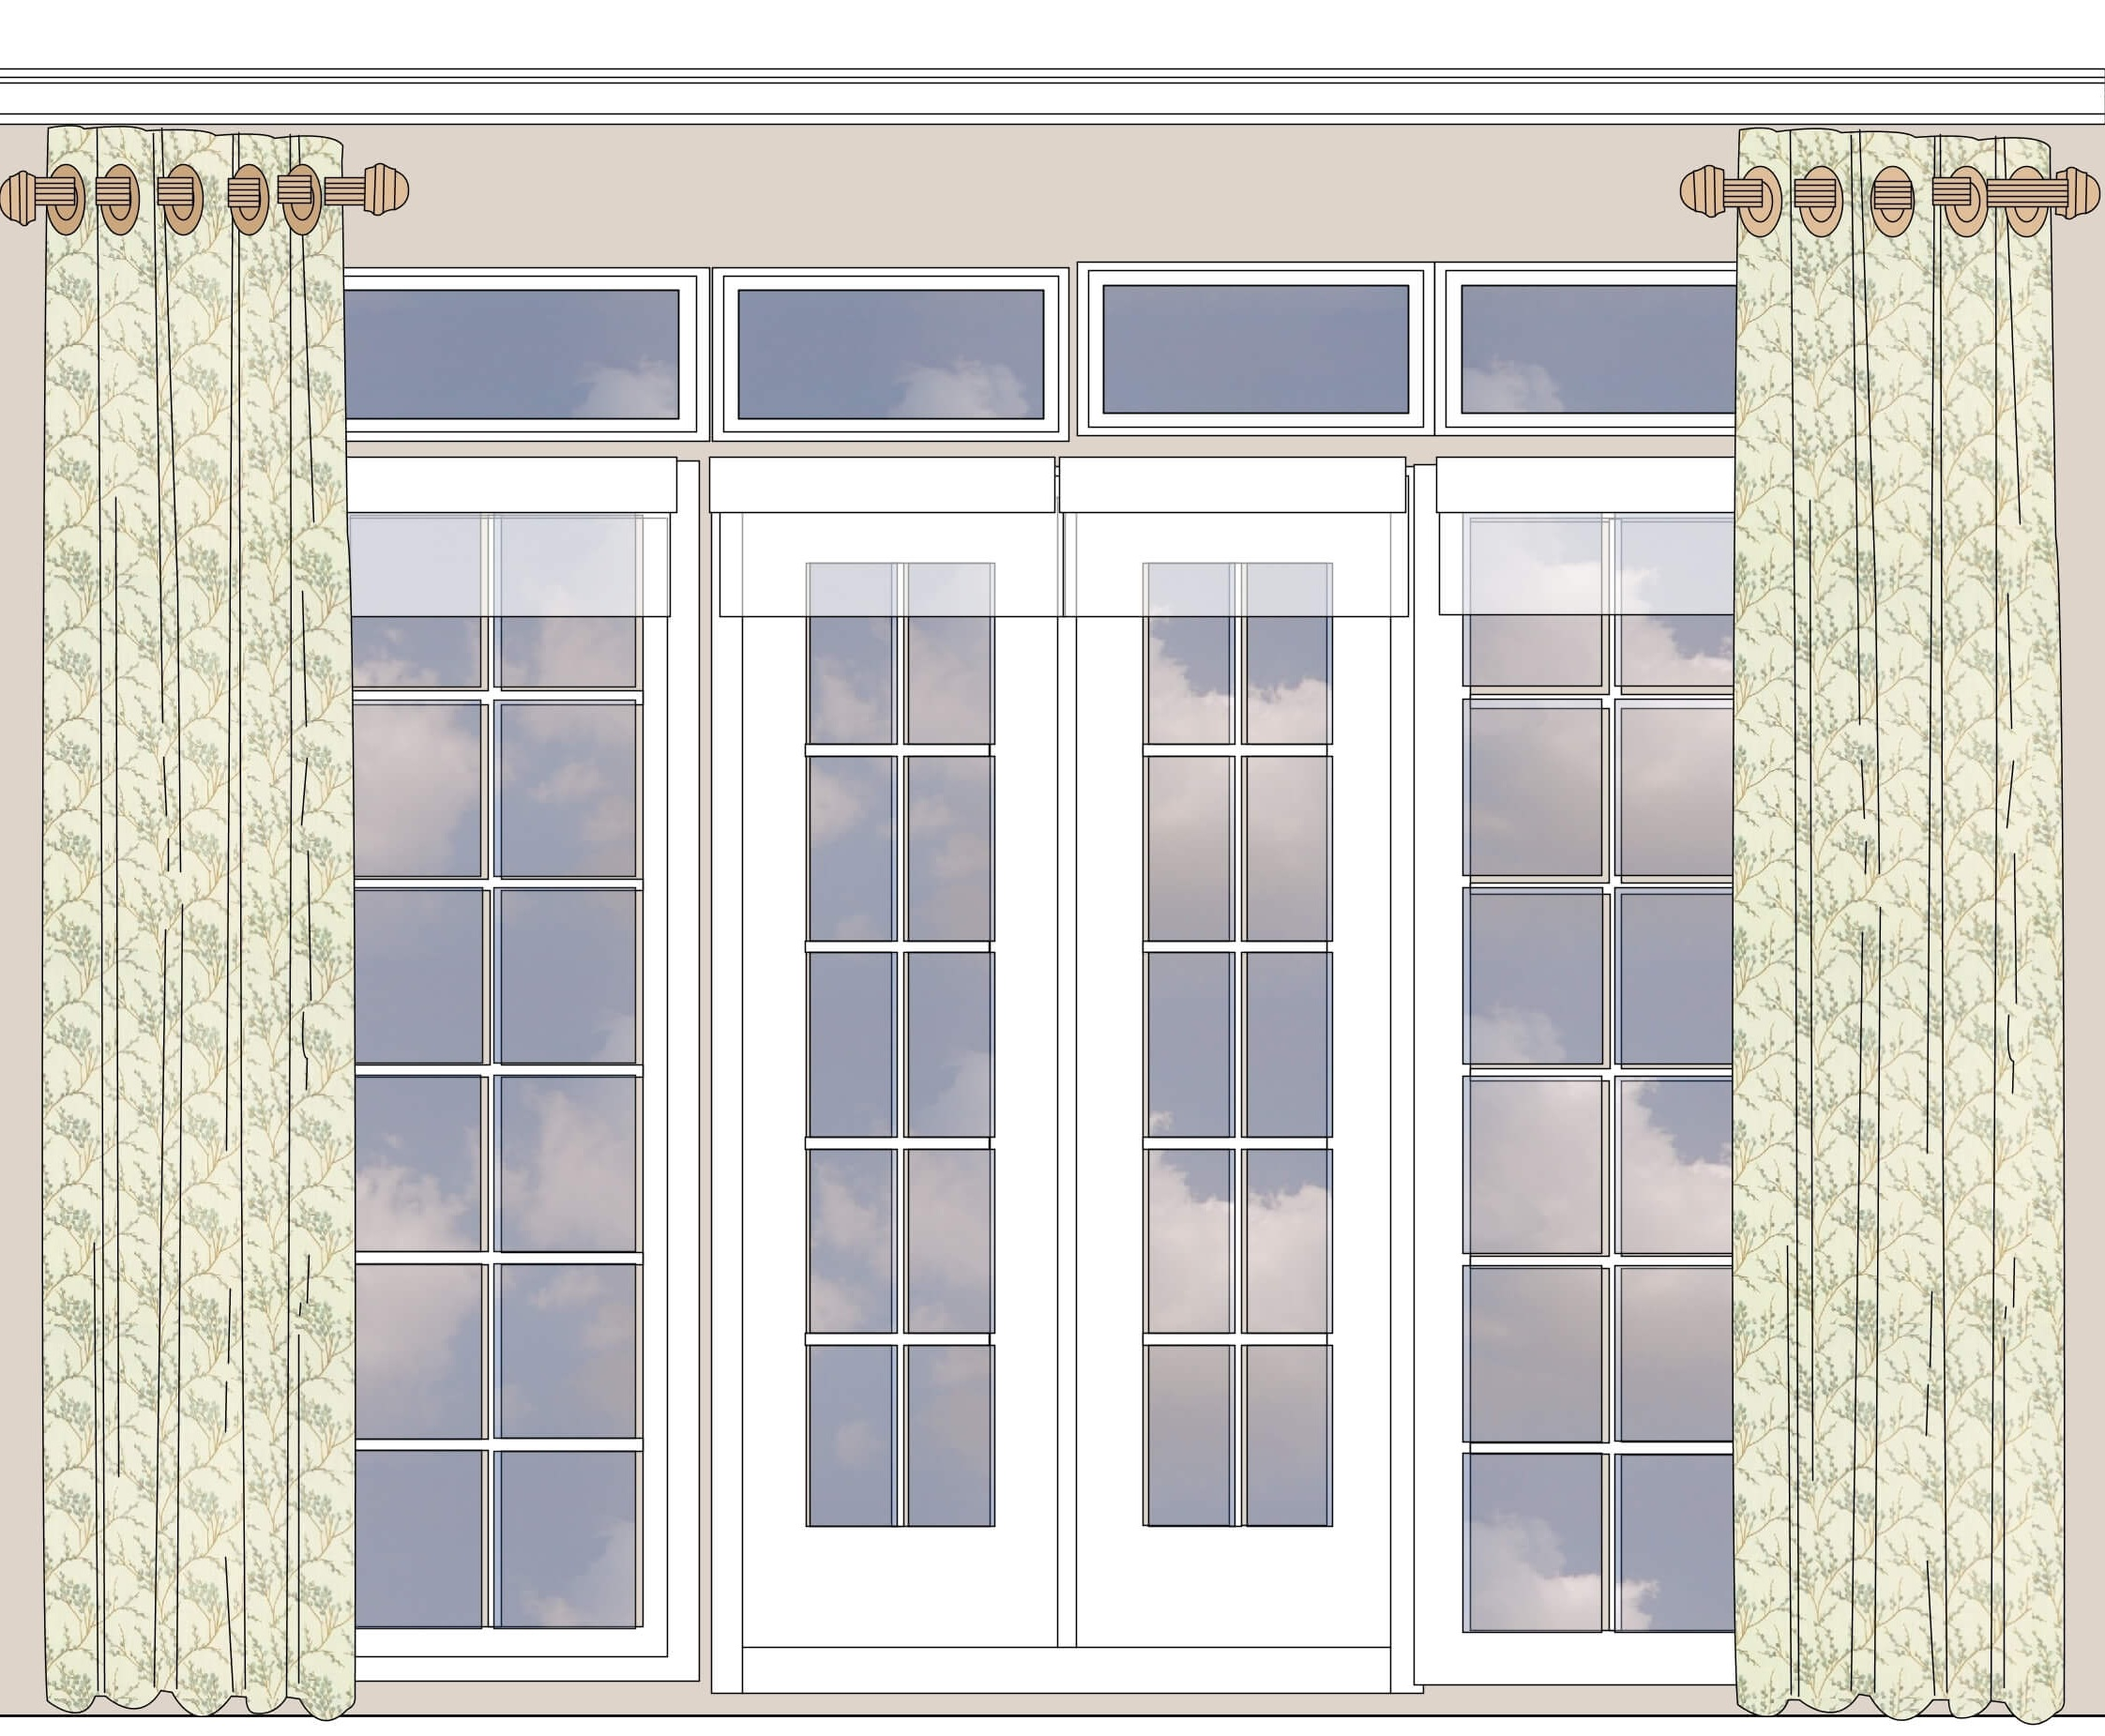 Short rods will work on a bay window or any wide window where you're not going to close the curtains.